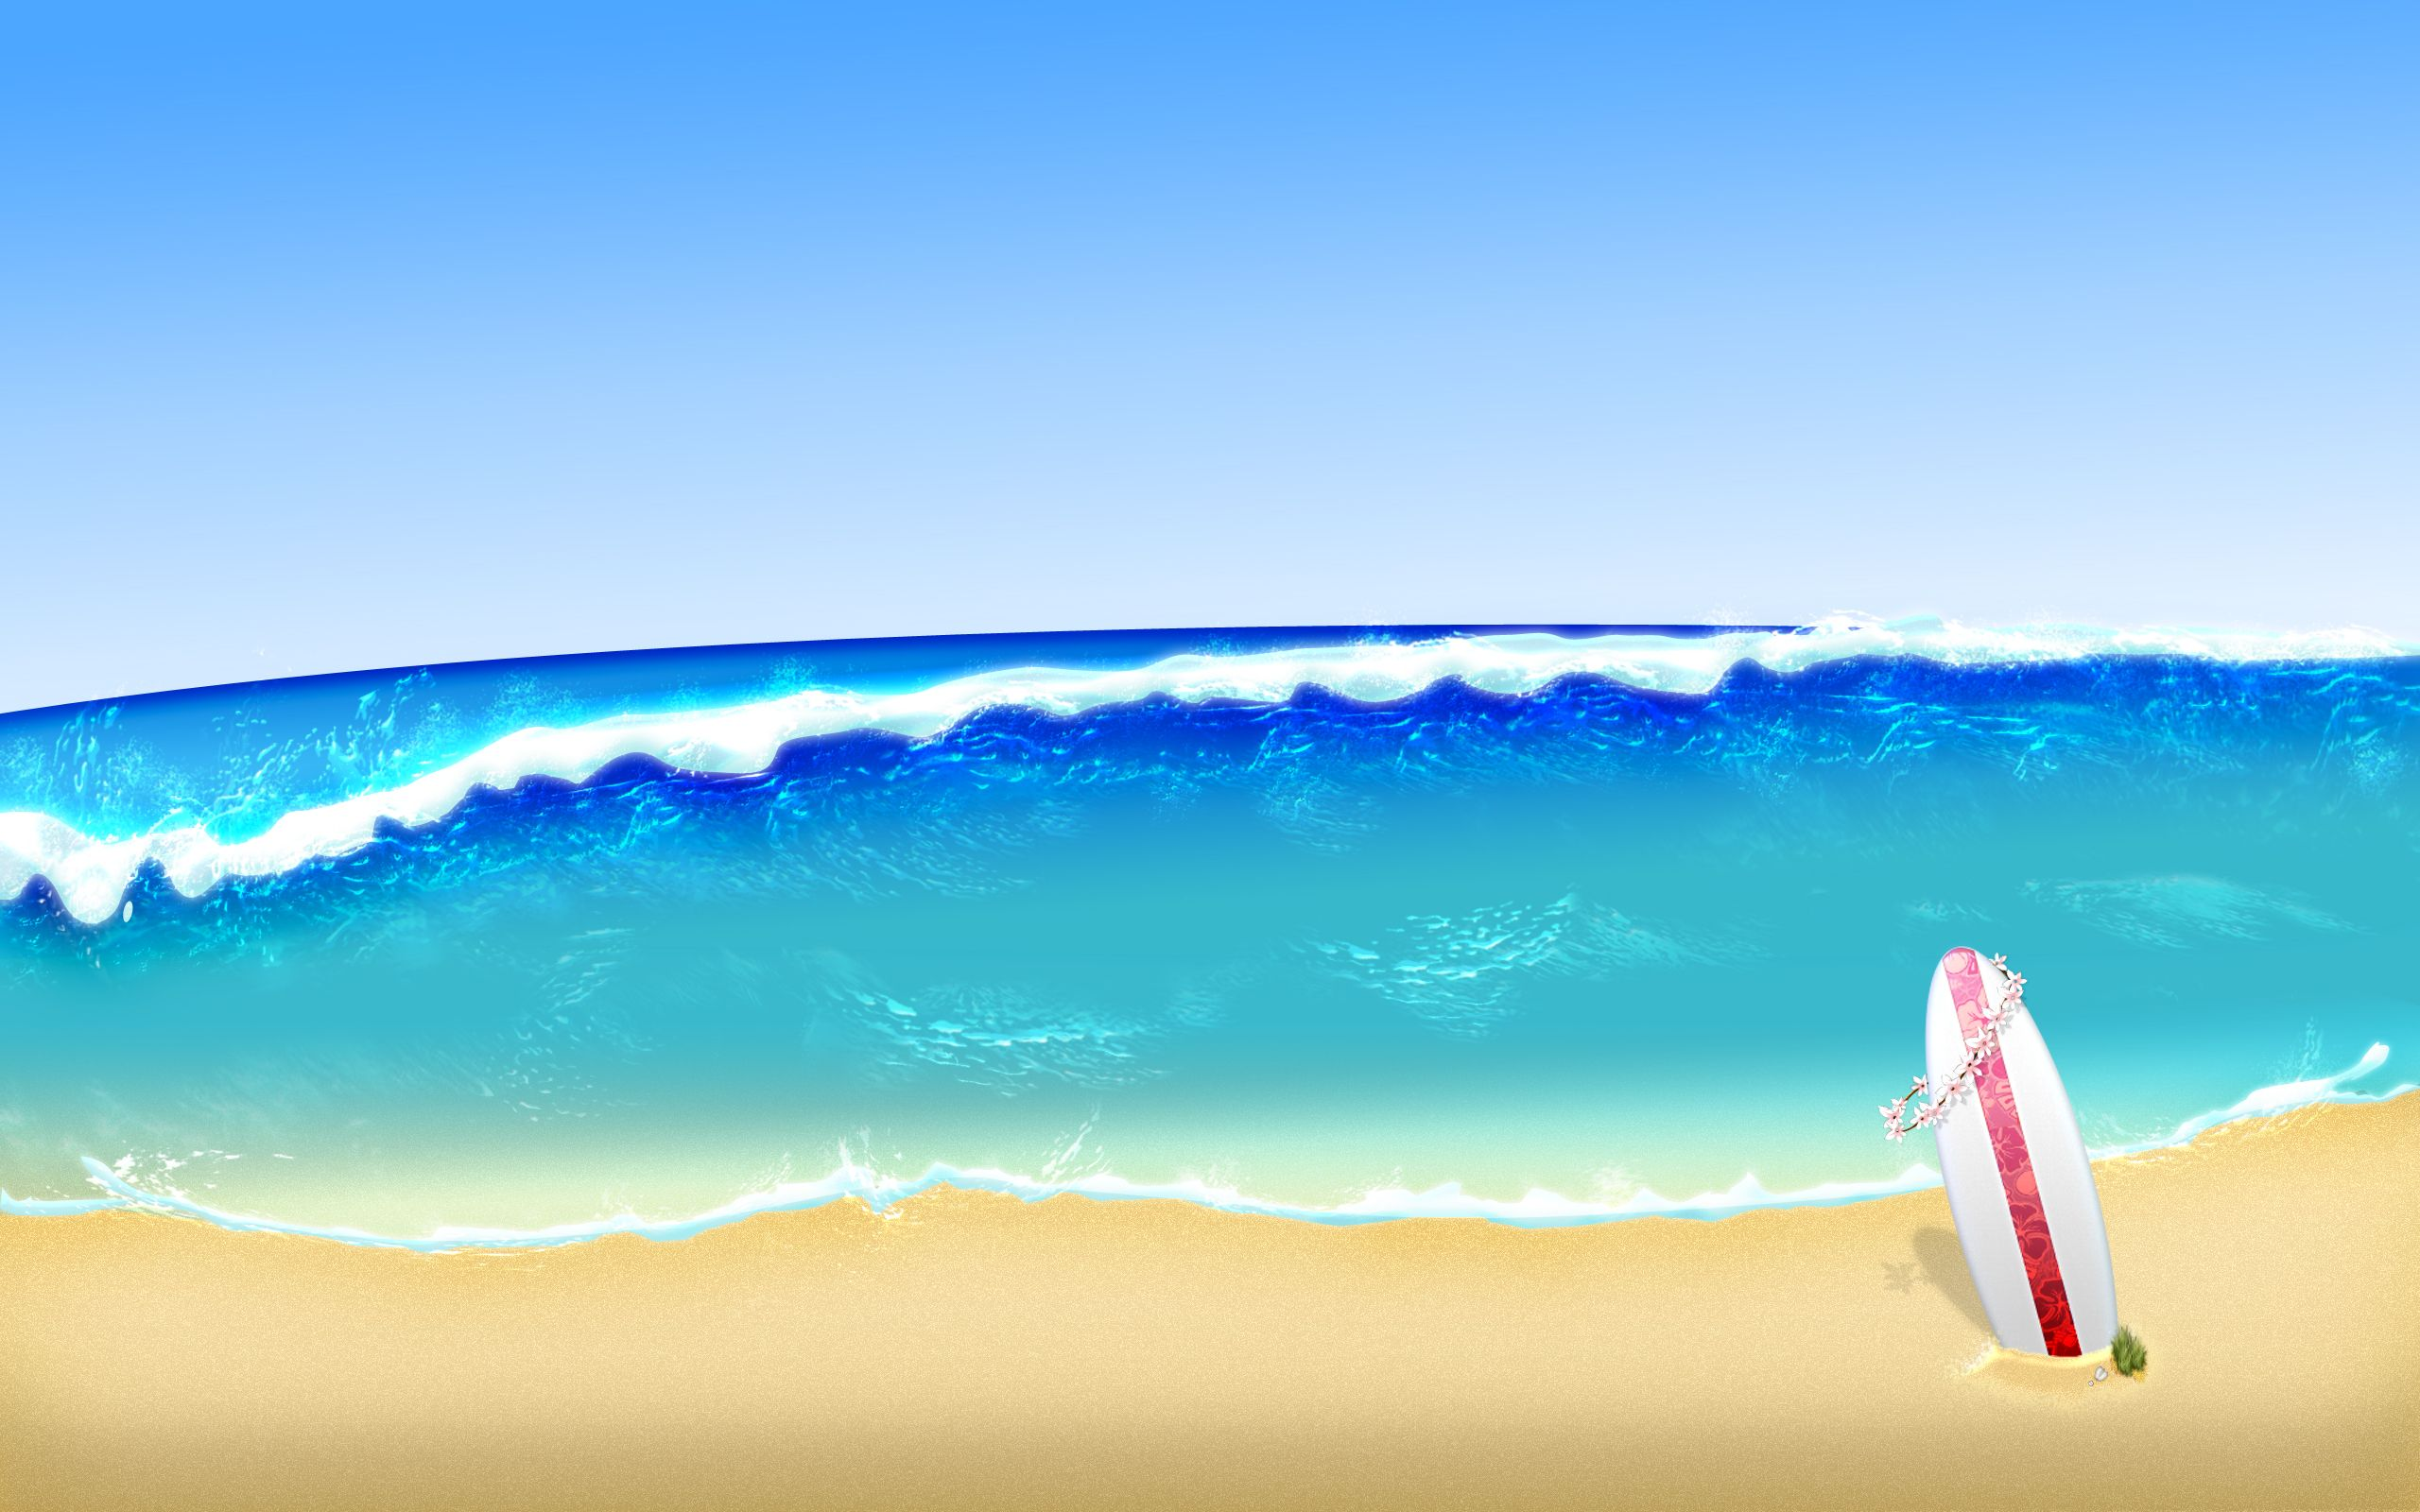 The Surfboard Artistic Wallpapers Artistic Wallpaper